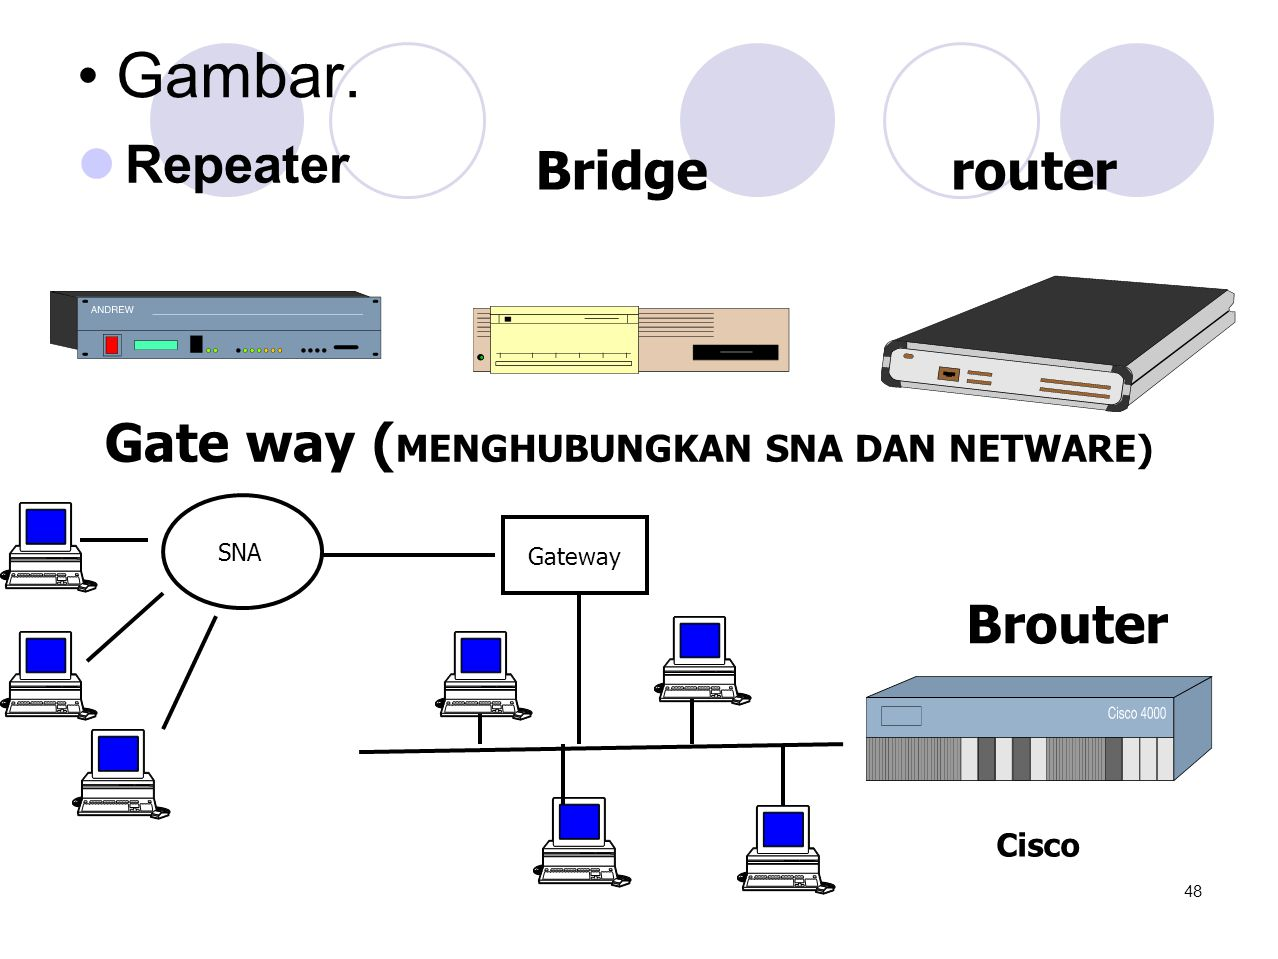 Gambar. Repeater Bridge router